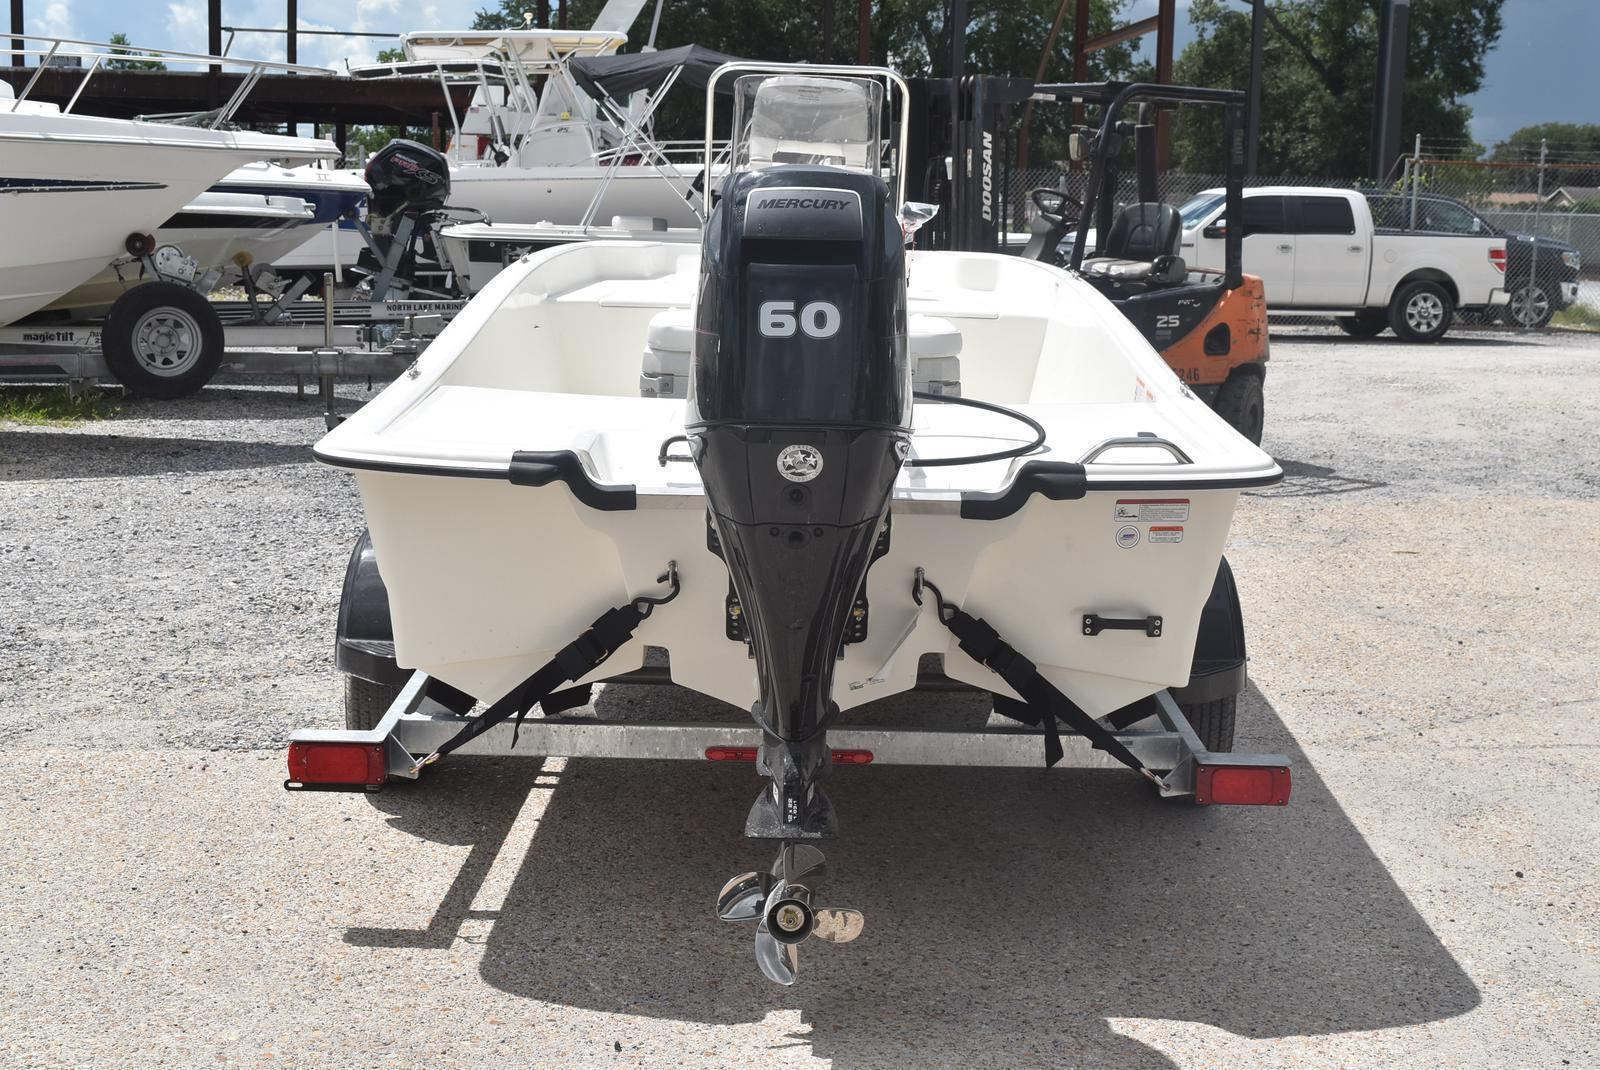 2020 Mako boat for sale, model of the boat is Pro Skiff 17, 75 ELPT & Image # 580 of 702